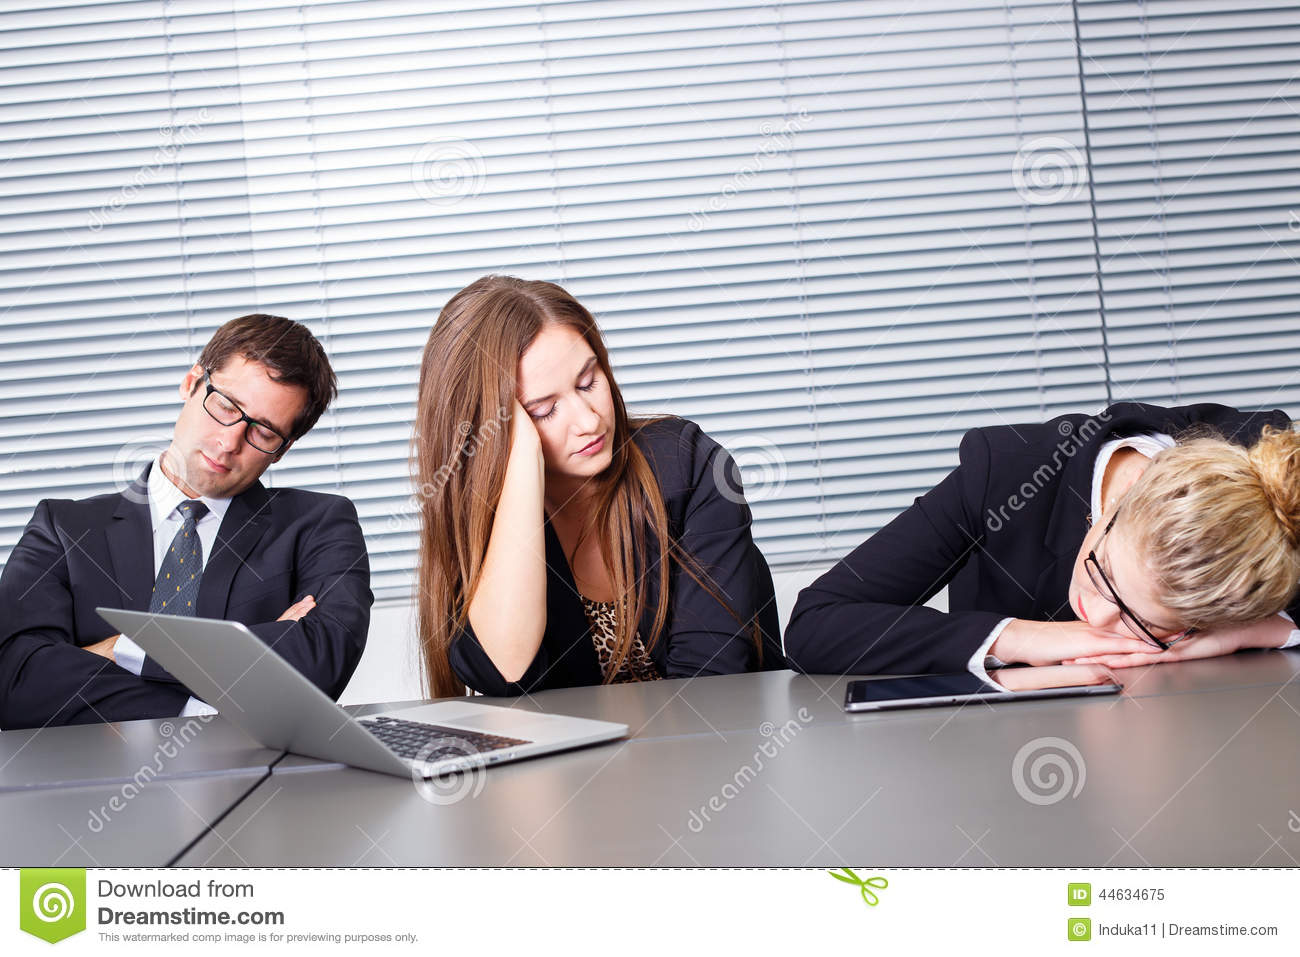 sleeping at work stock image image of businesswoman 44634675